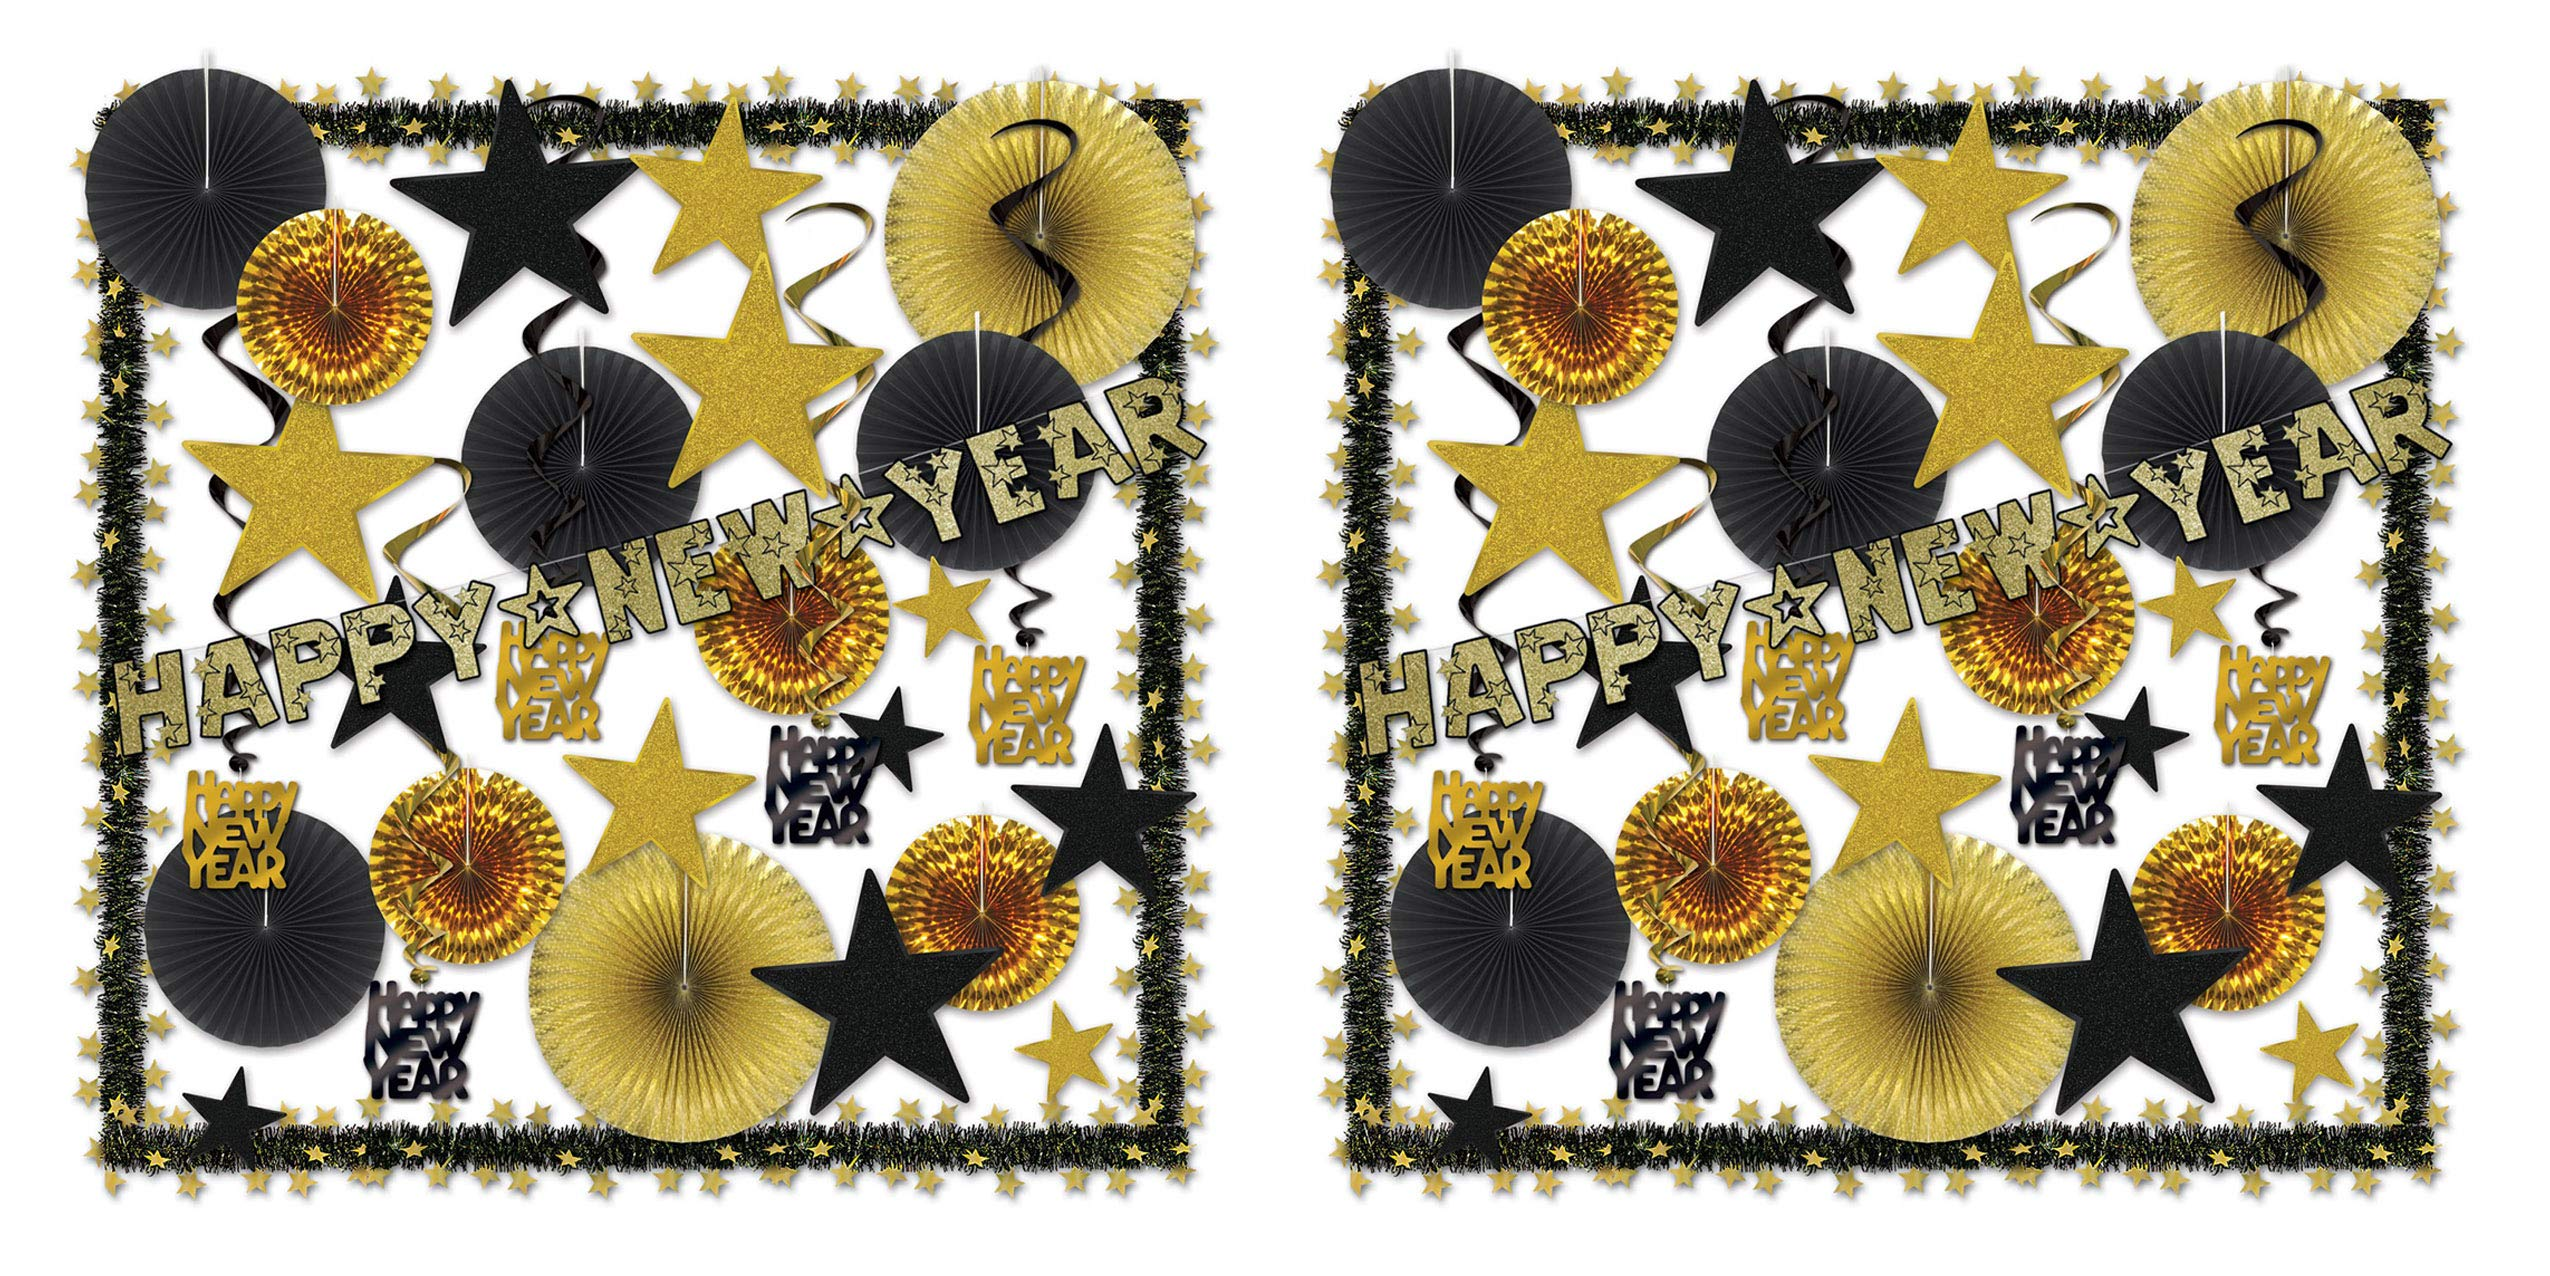 Beistle 80888-GD Glistening Gold NY Decorating Kit (Pack of 2), Assorted Black